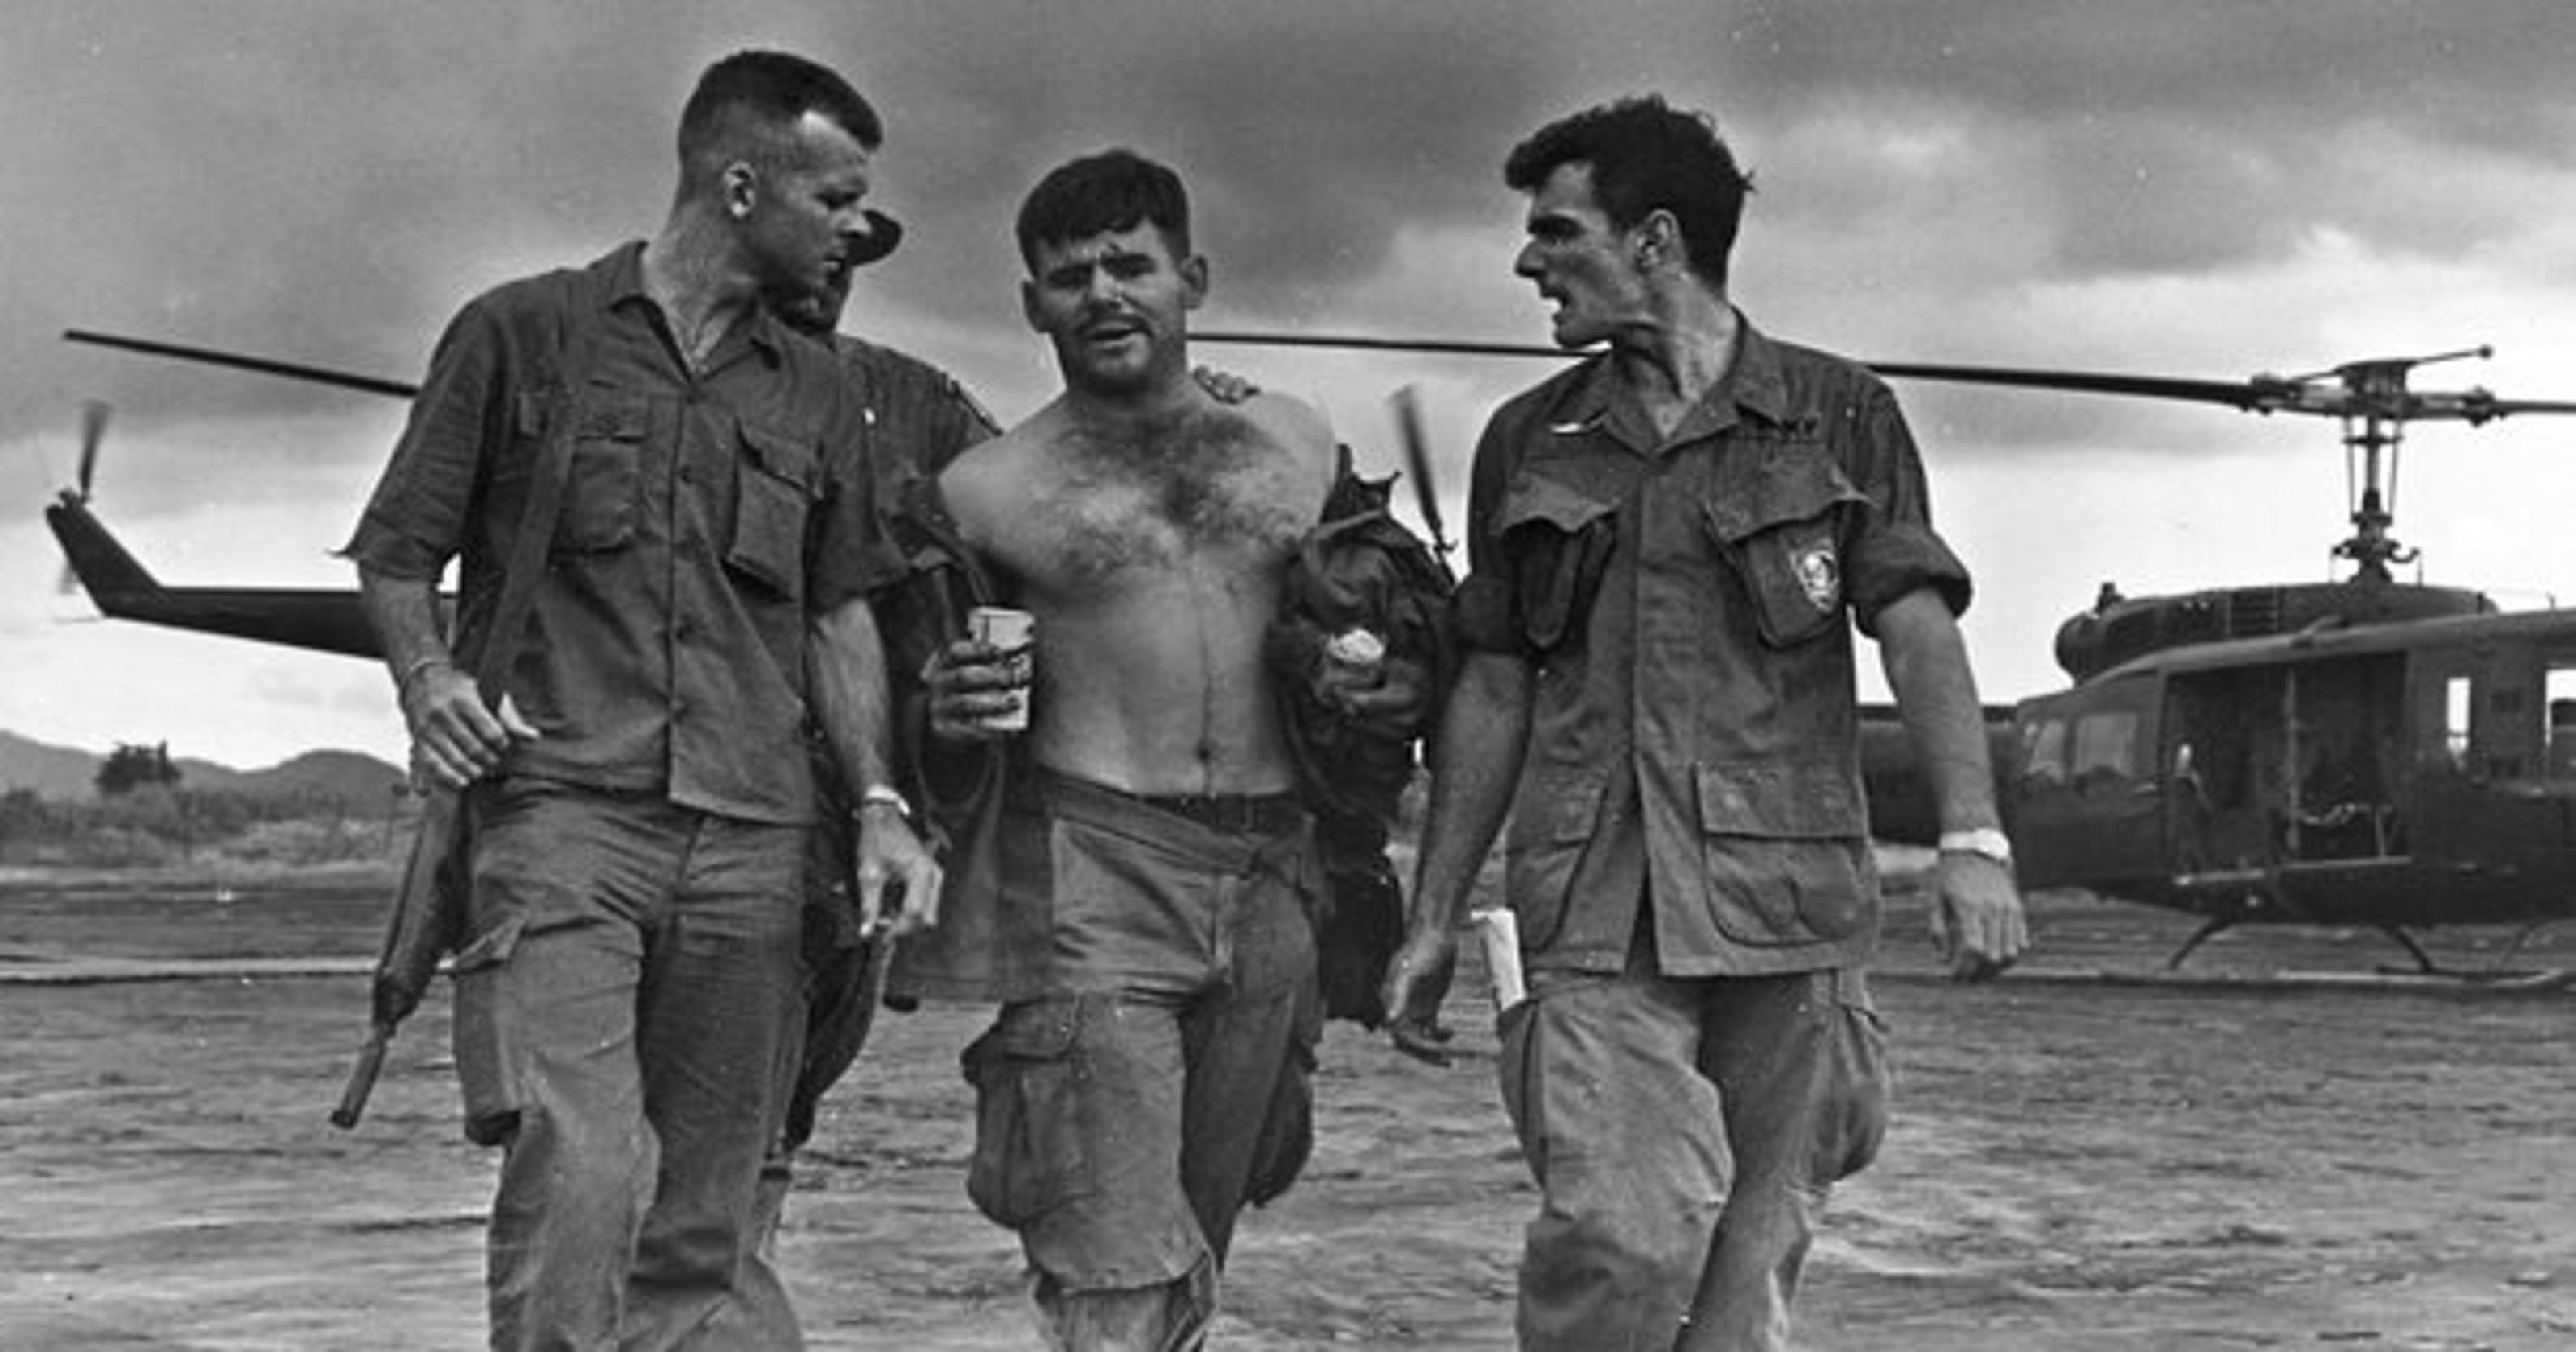 Donald Trump to give Medal of Honor to Vietnam vet Gary Rose